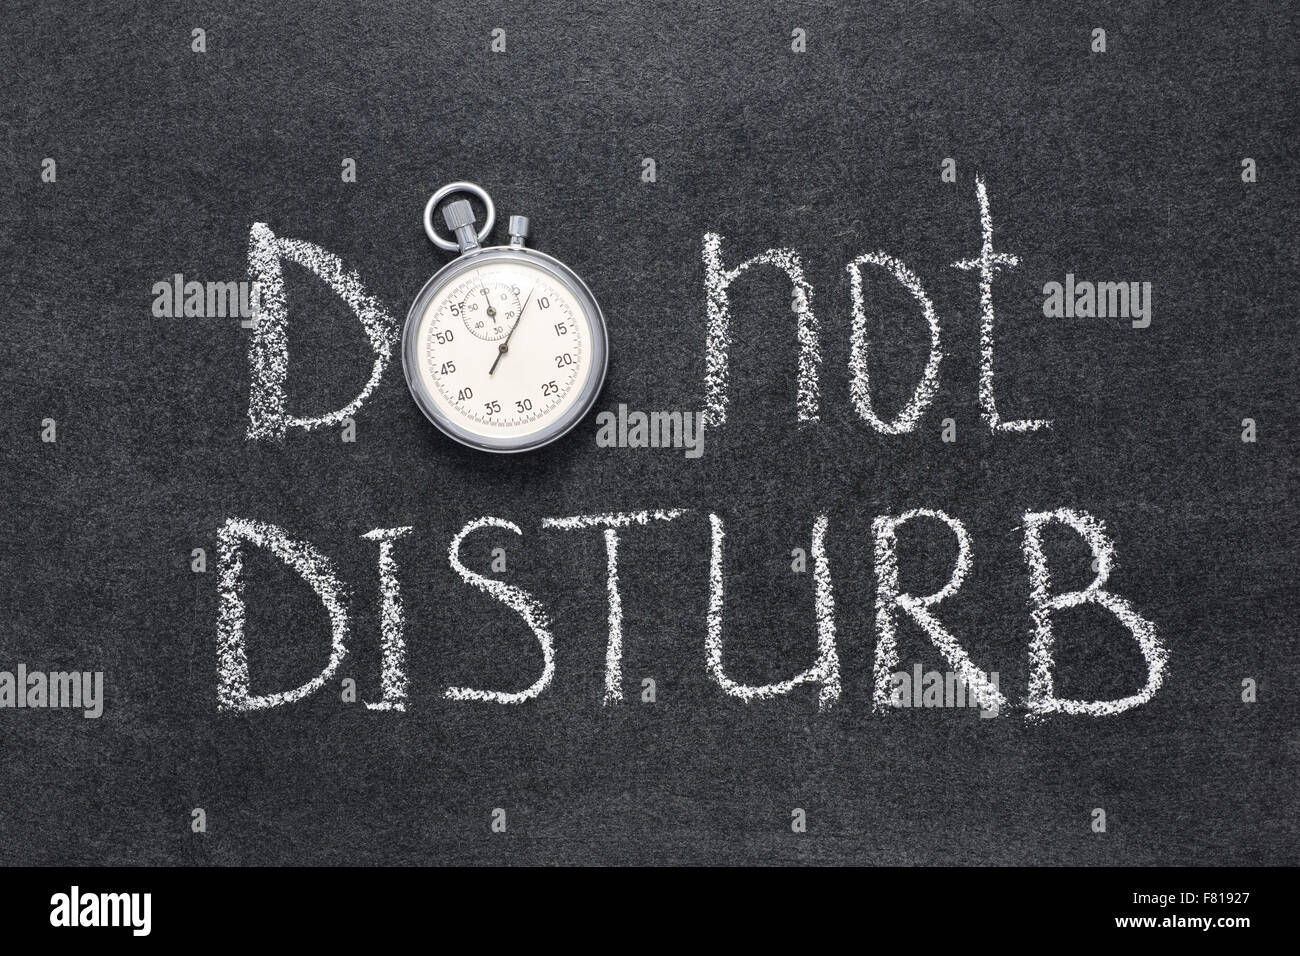 do not disturb request handwritten on chalkboard with vintage precise stopwatch used instead of O - Stock Image